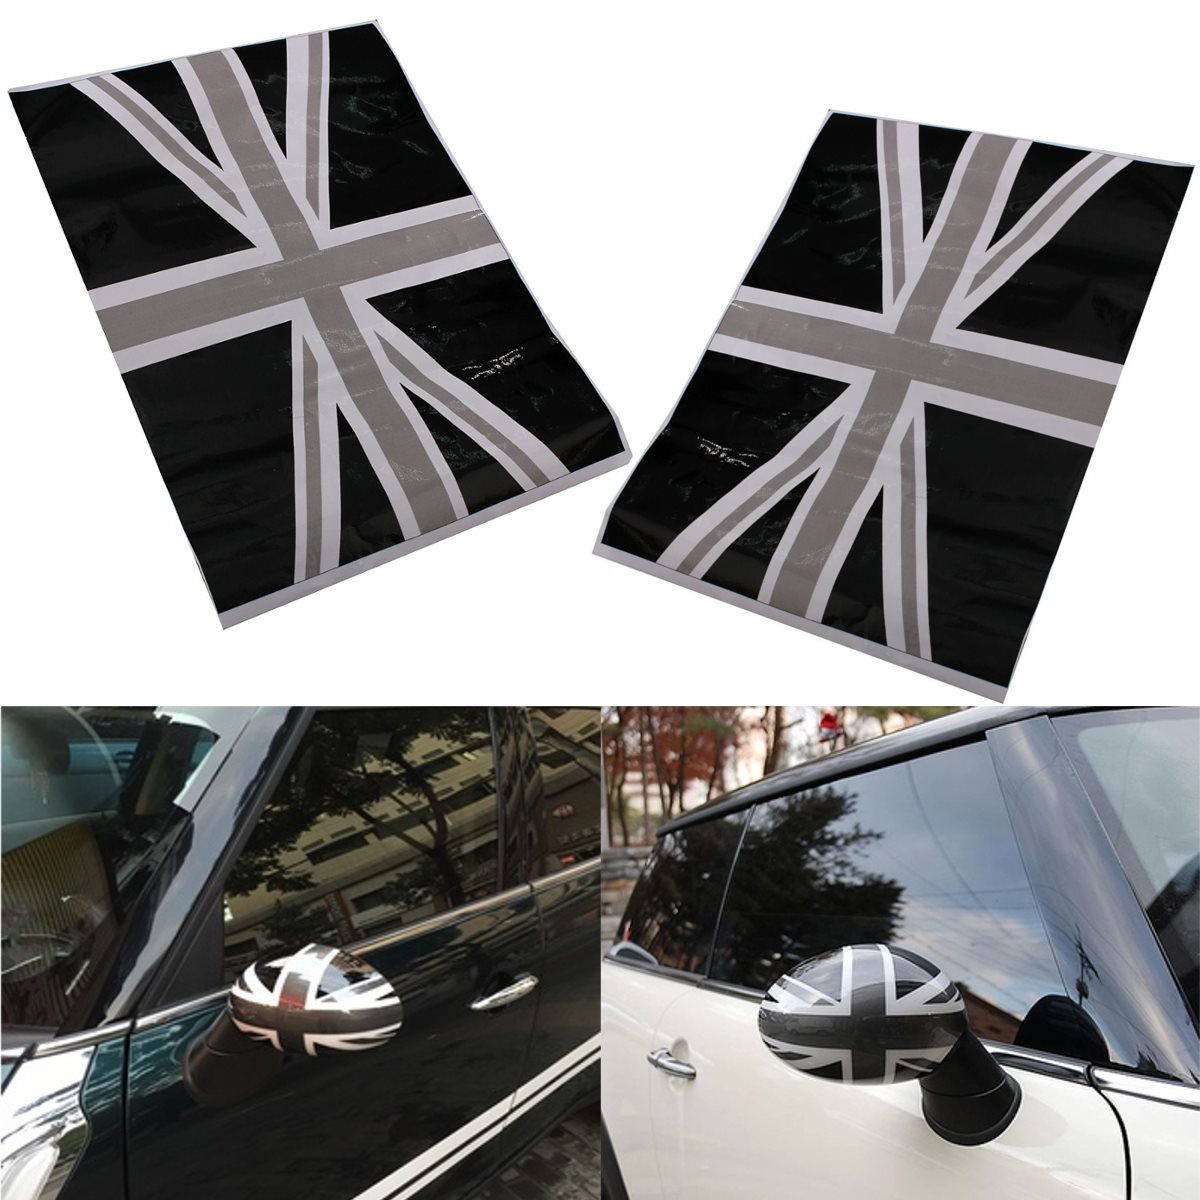 MINI COOPER MINI ONE BMW Union Jack Car Vinyl Stickers Decals for Wings x 2